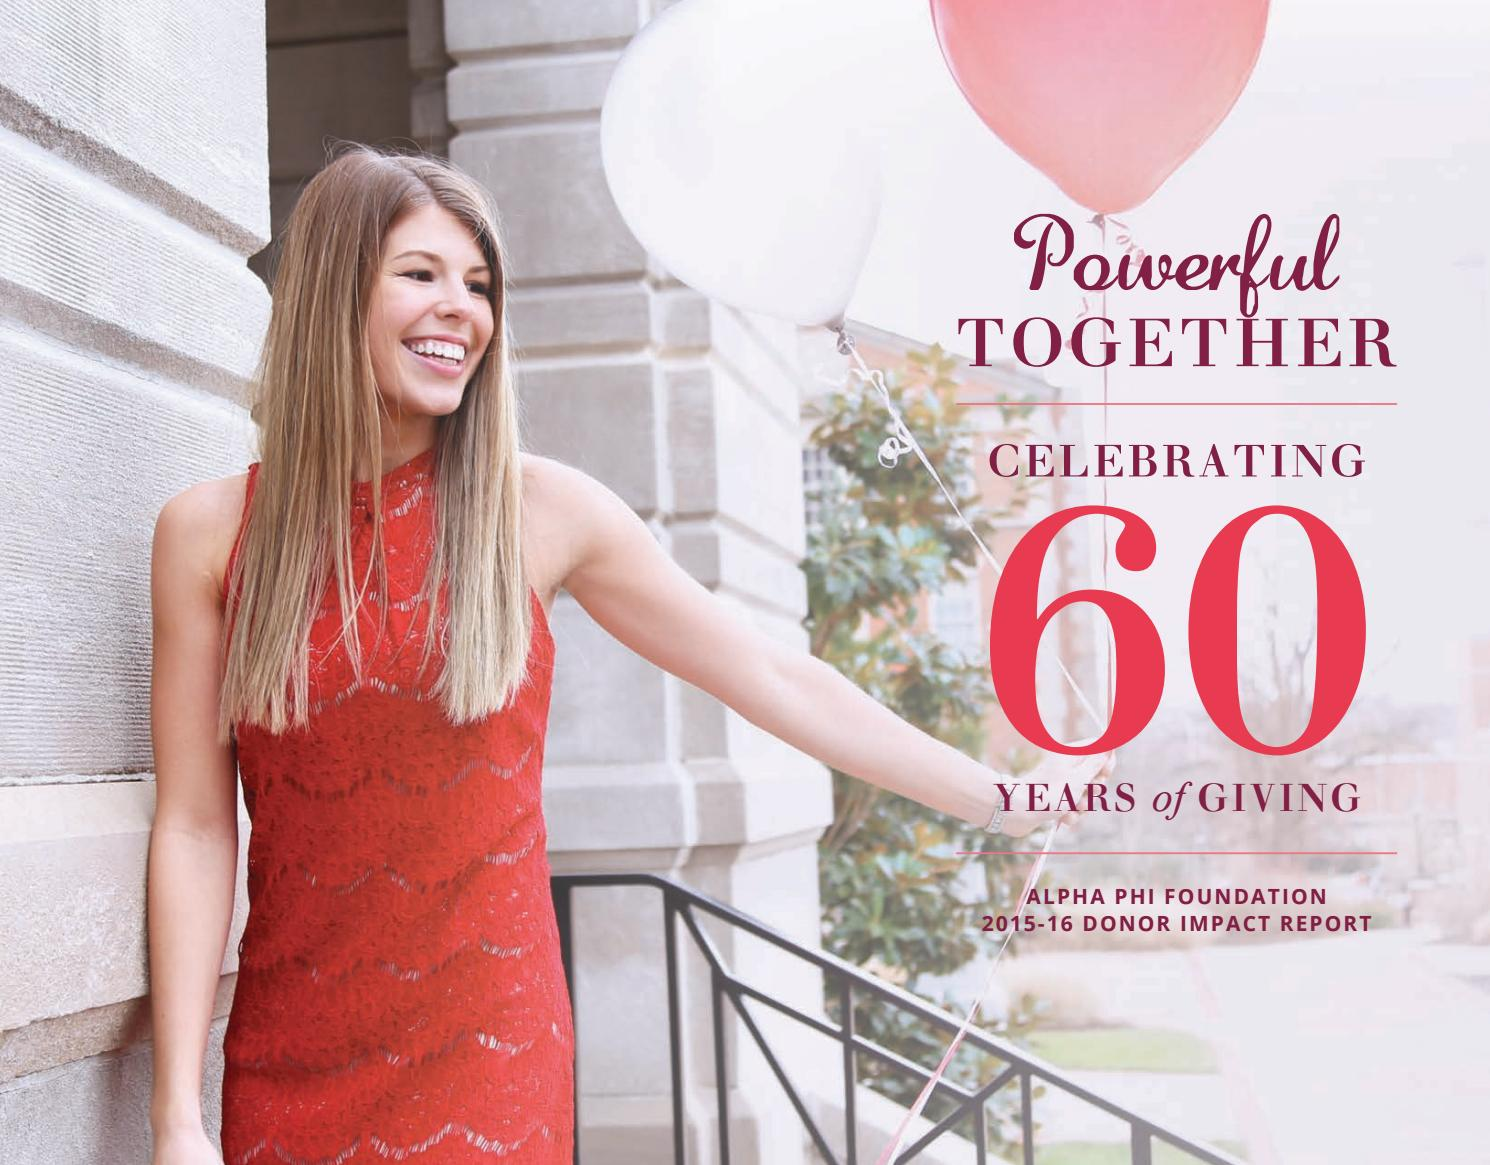 Alpha Phi Foundation 2015-16 Donor Impact Report by Alpha Phi Foundation - Issuu